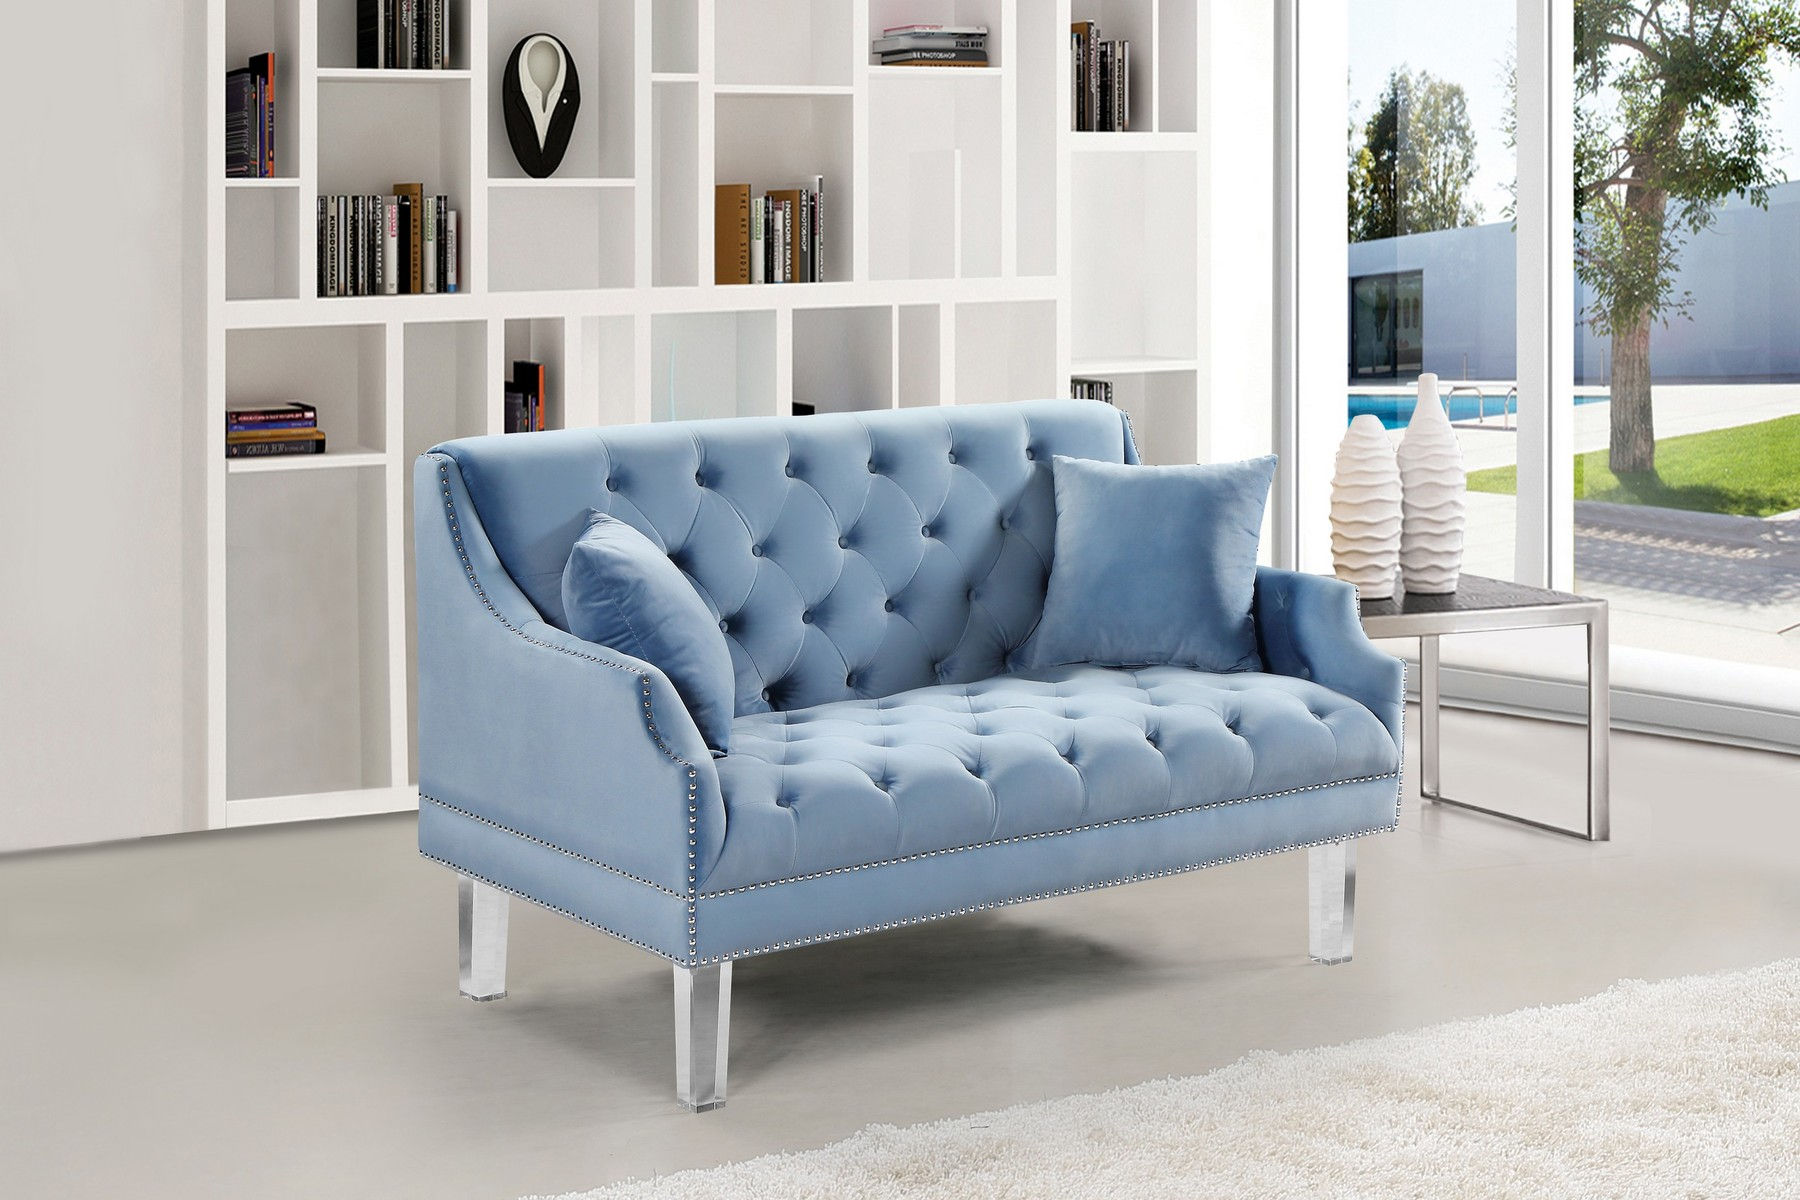 Stupendous Roxy Blue Loveseat Squirreltailoven Fun Painted Chair Ideas Images Squirreltailovenorg